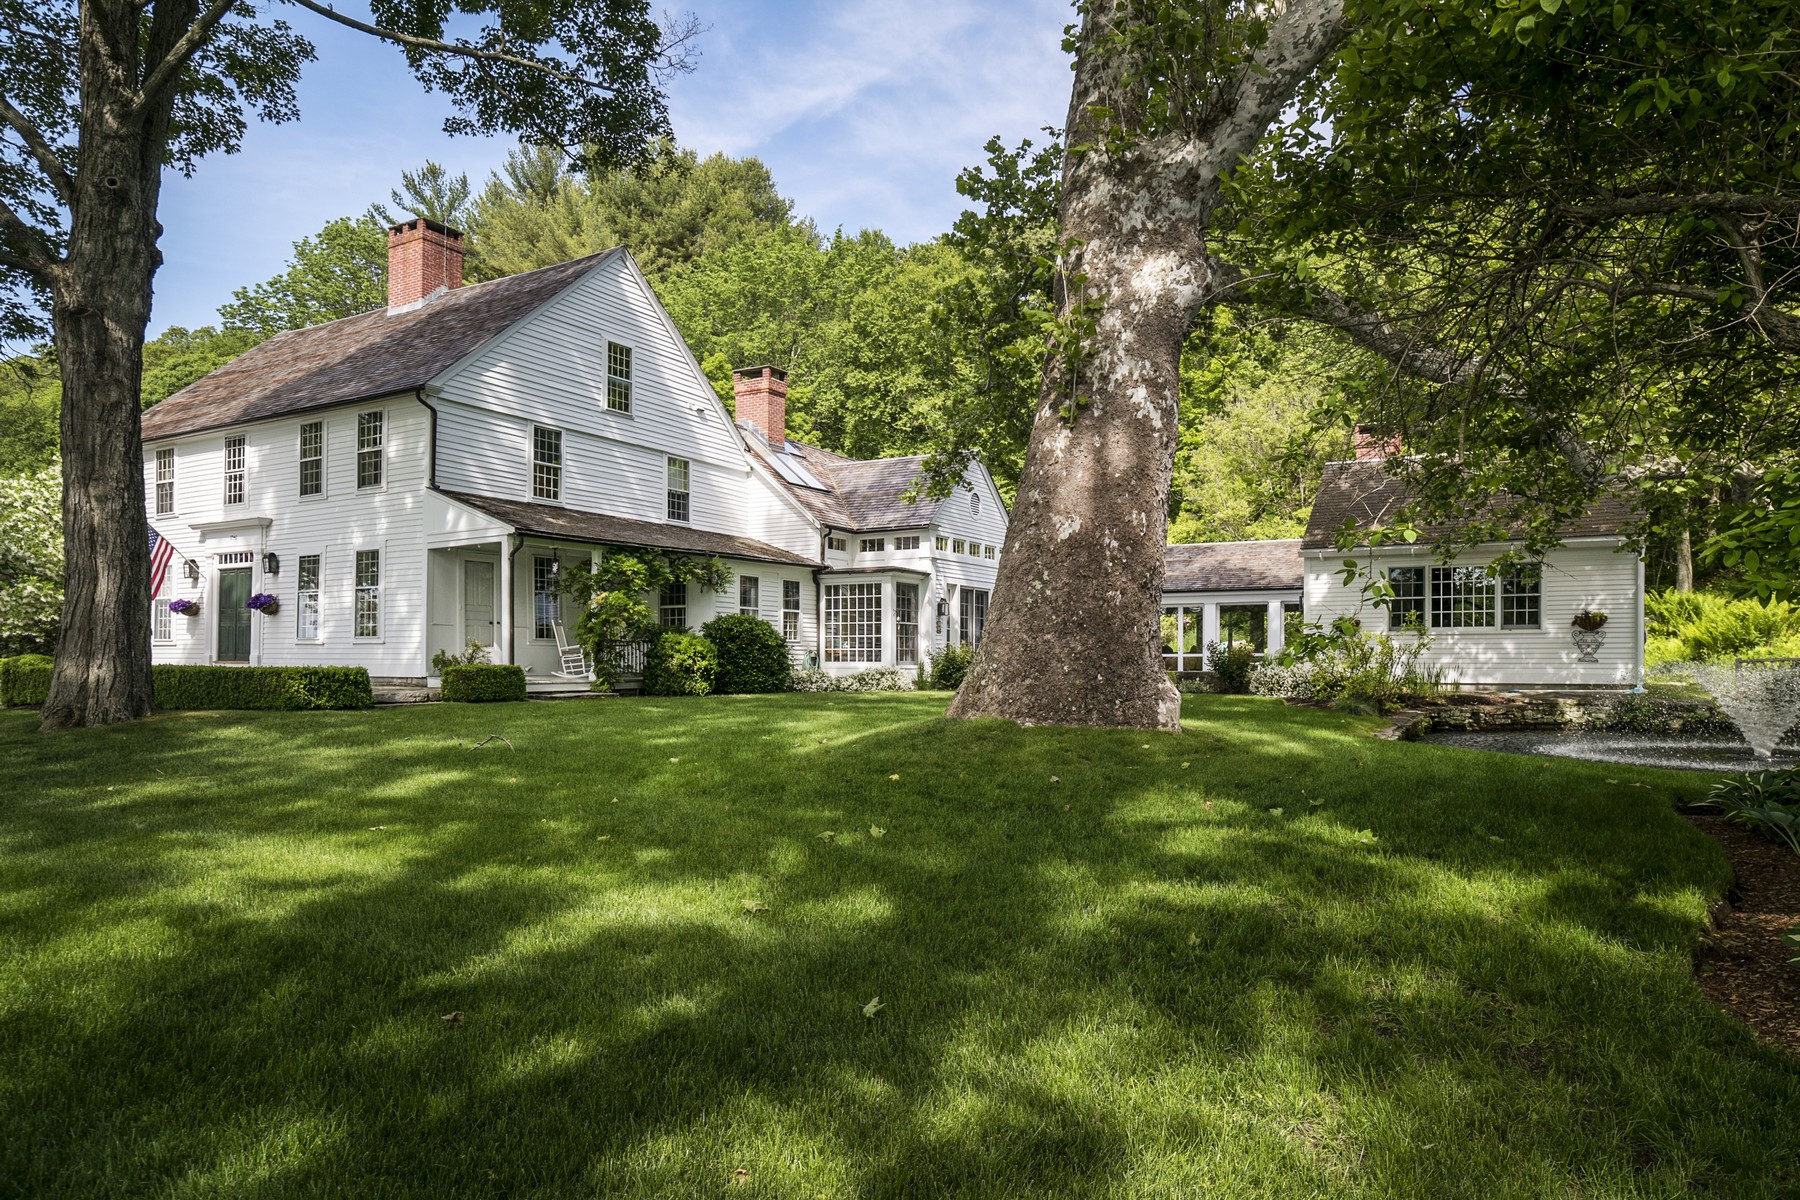 Single Family Home for Sale at Gracious 18th Century Residence 551 Hamburg Rd Lyme, Connecticut 06371 United States